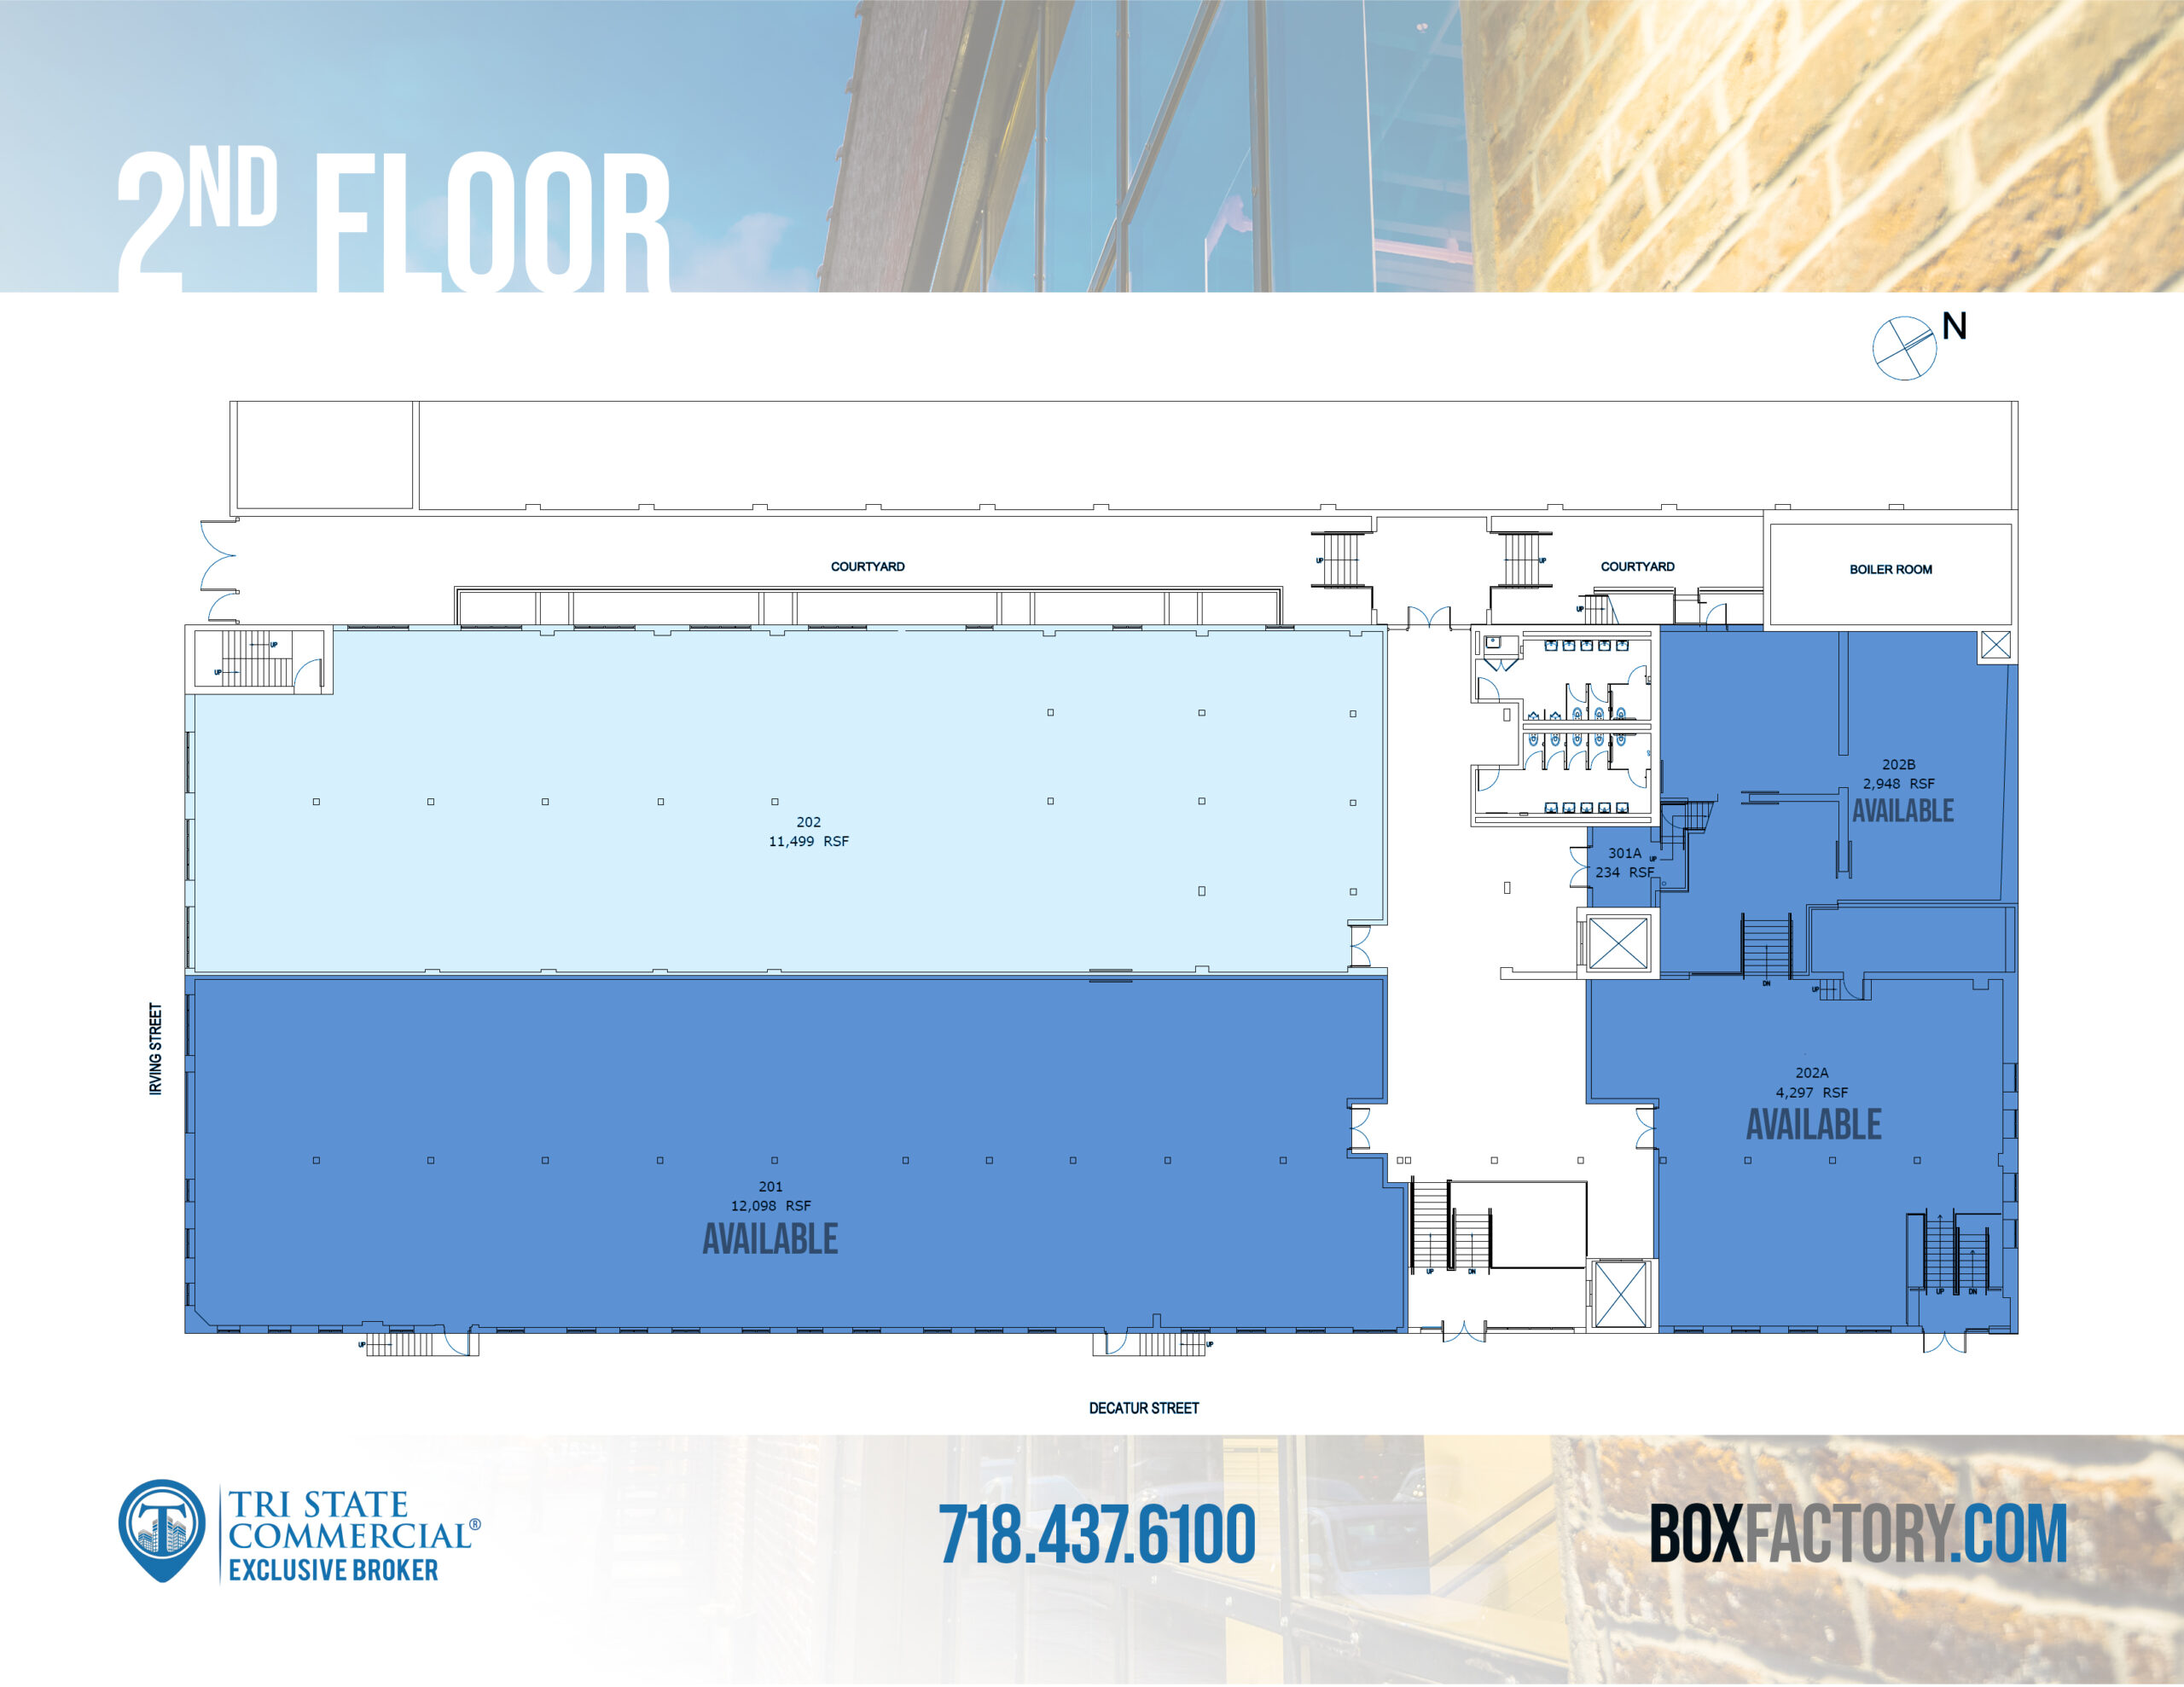 Box Factory - 2nd floor available spaces plan